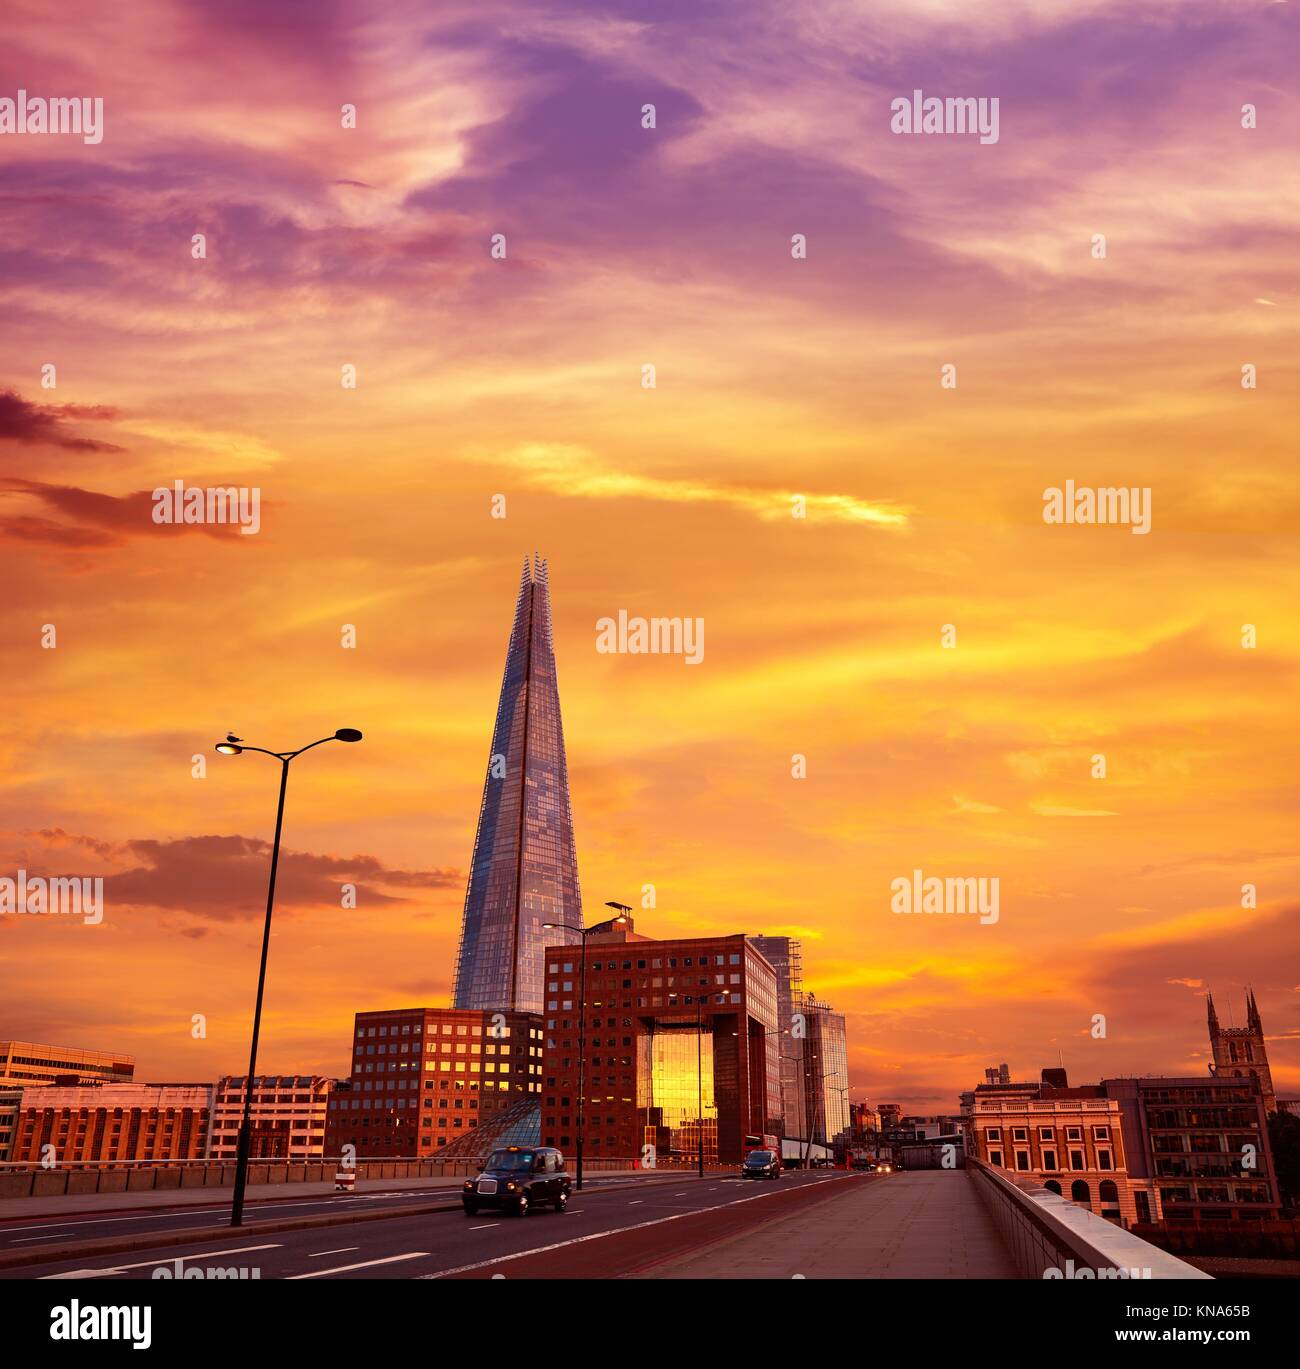 London The Shard building at sunset in England. - Stock Image